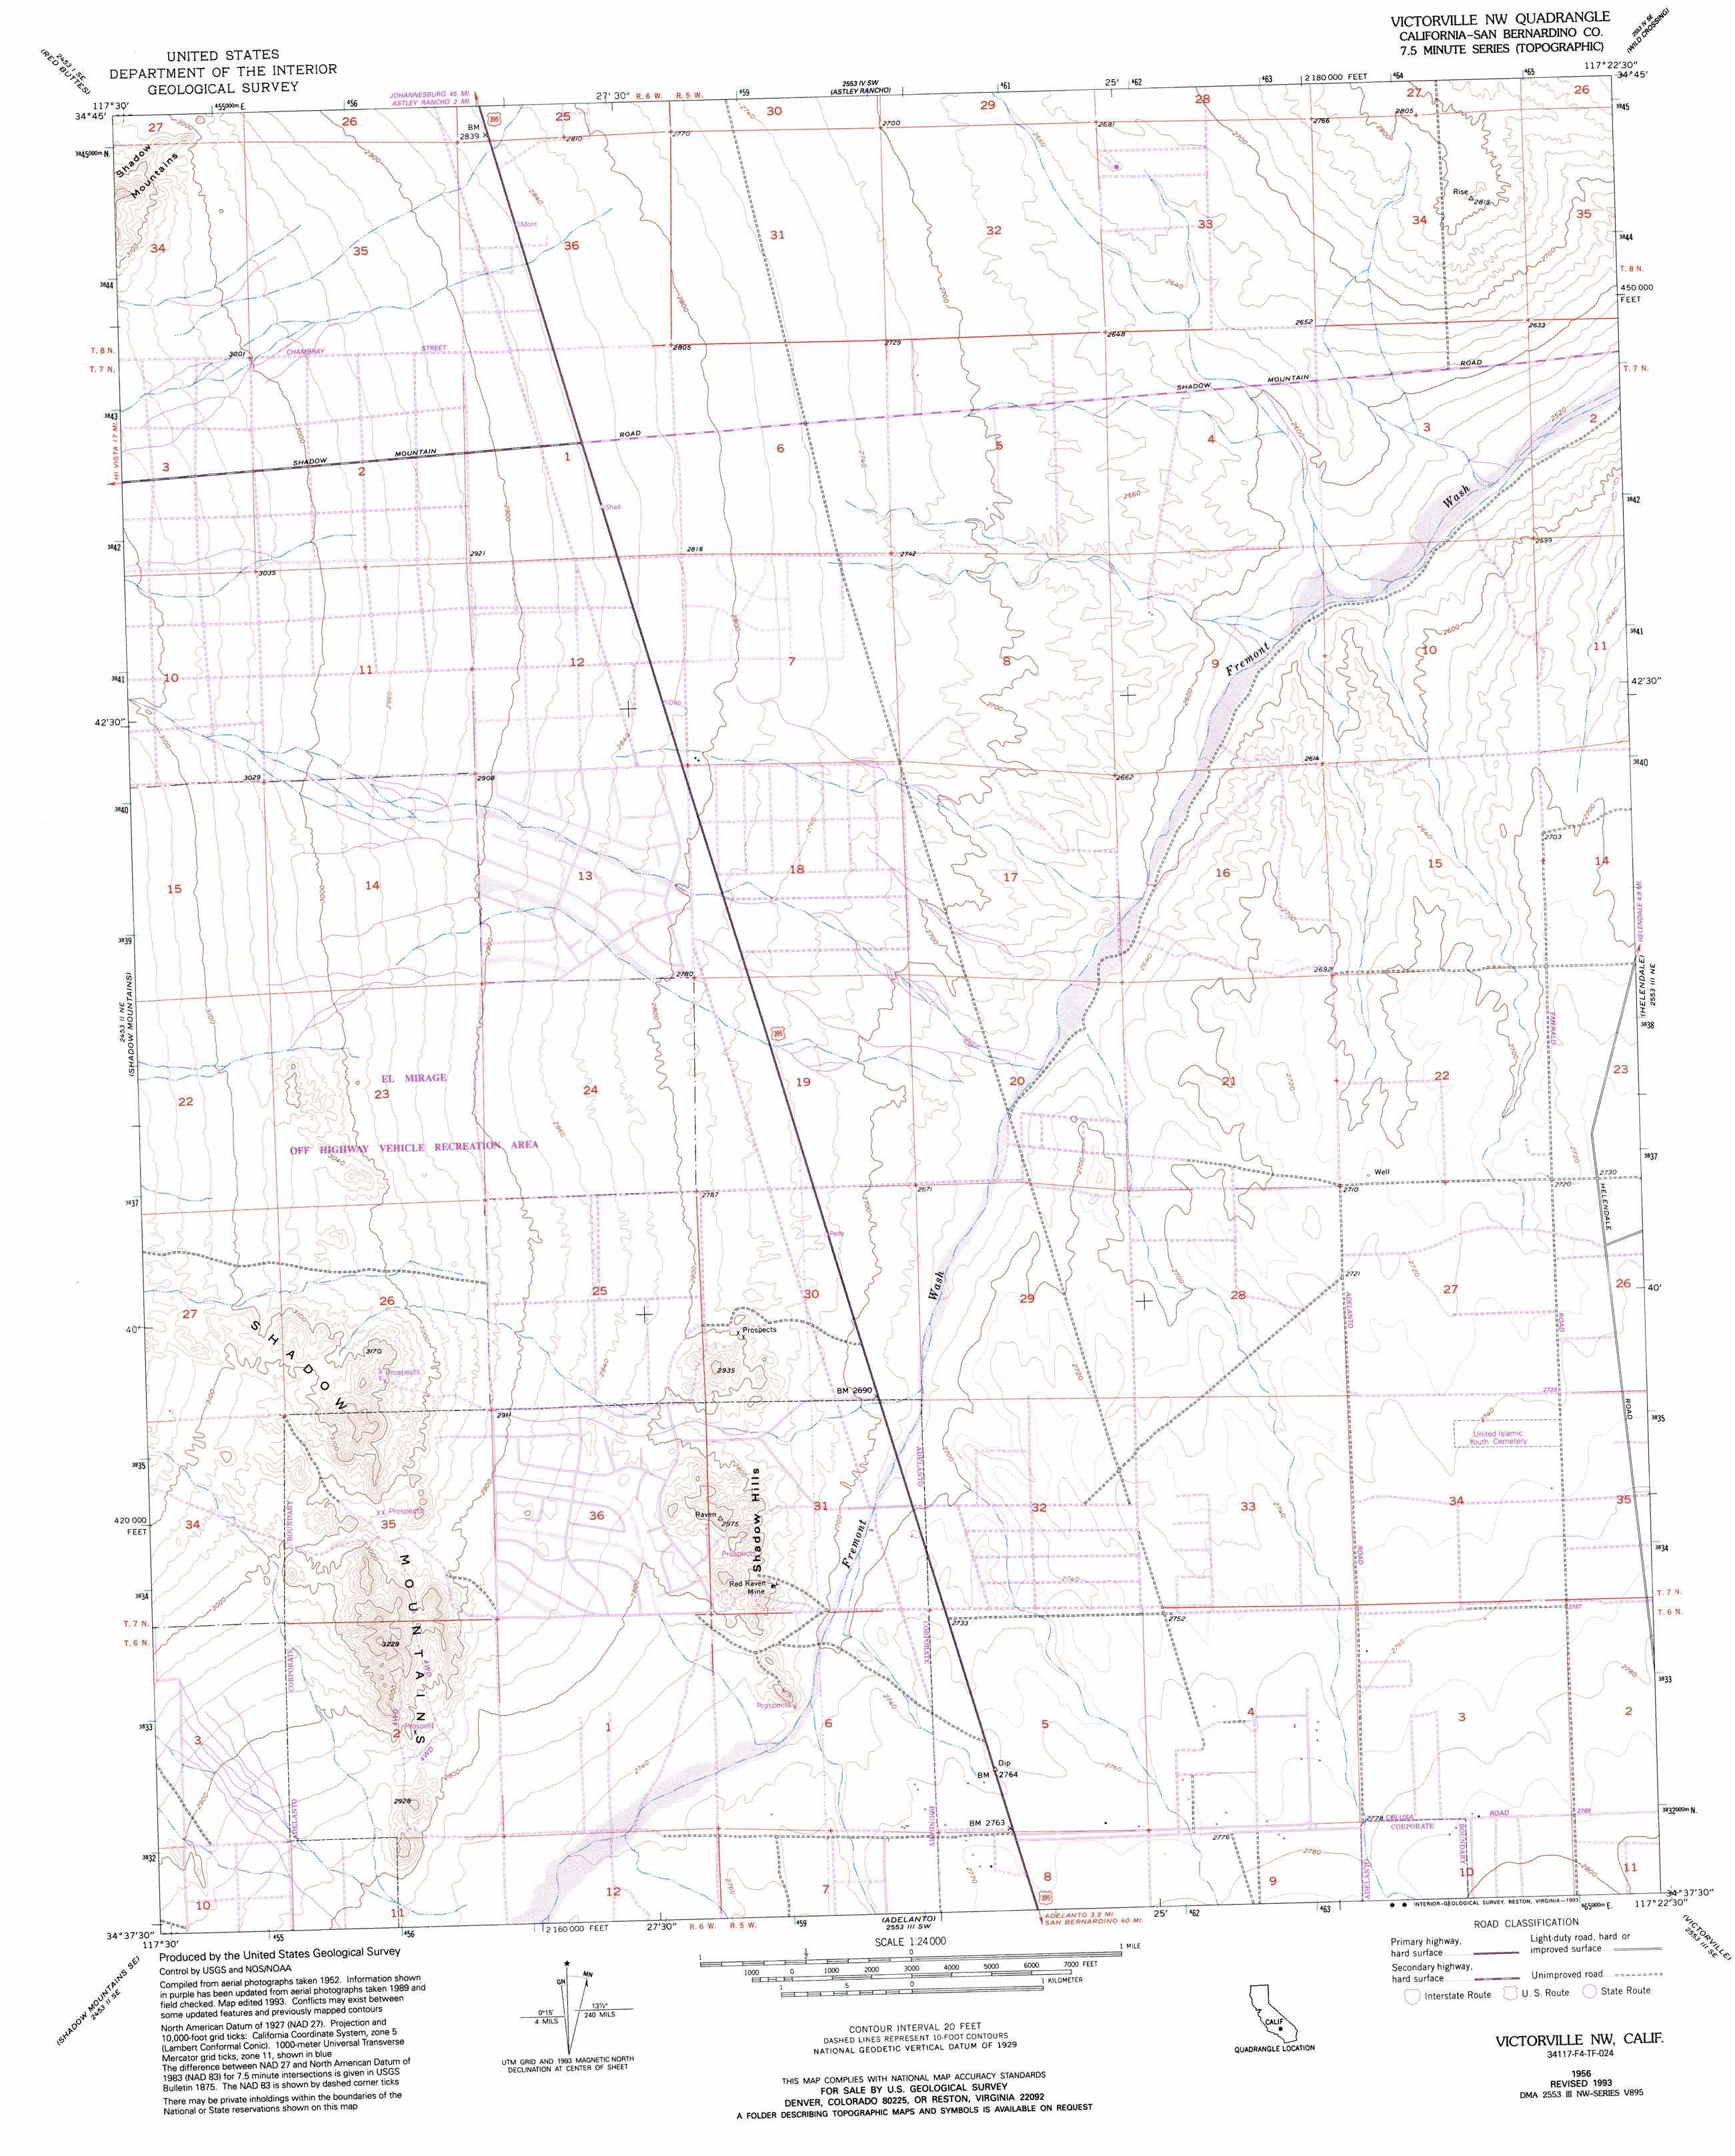 Victorville Nw Topographic Map CA USGS Topo Quad F - Us geological survey topographic maps for sale